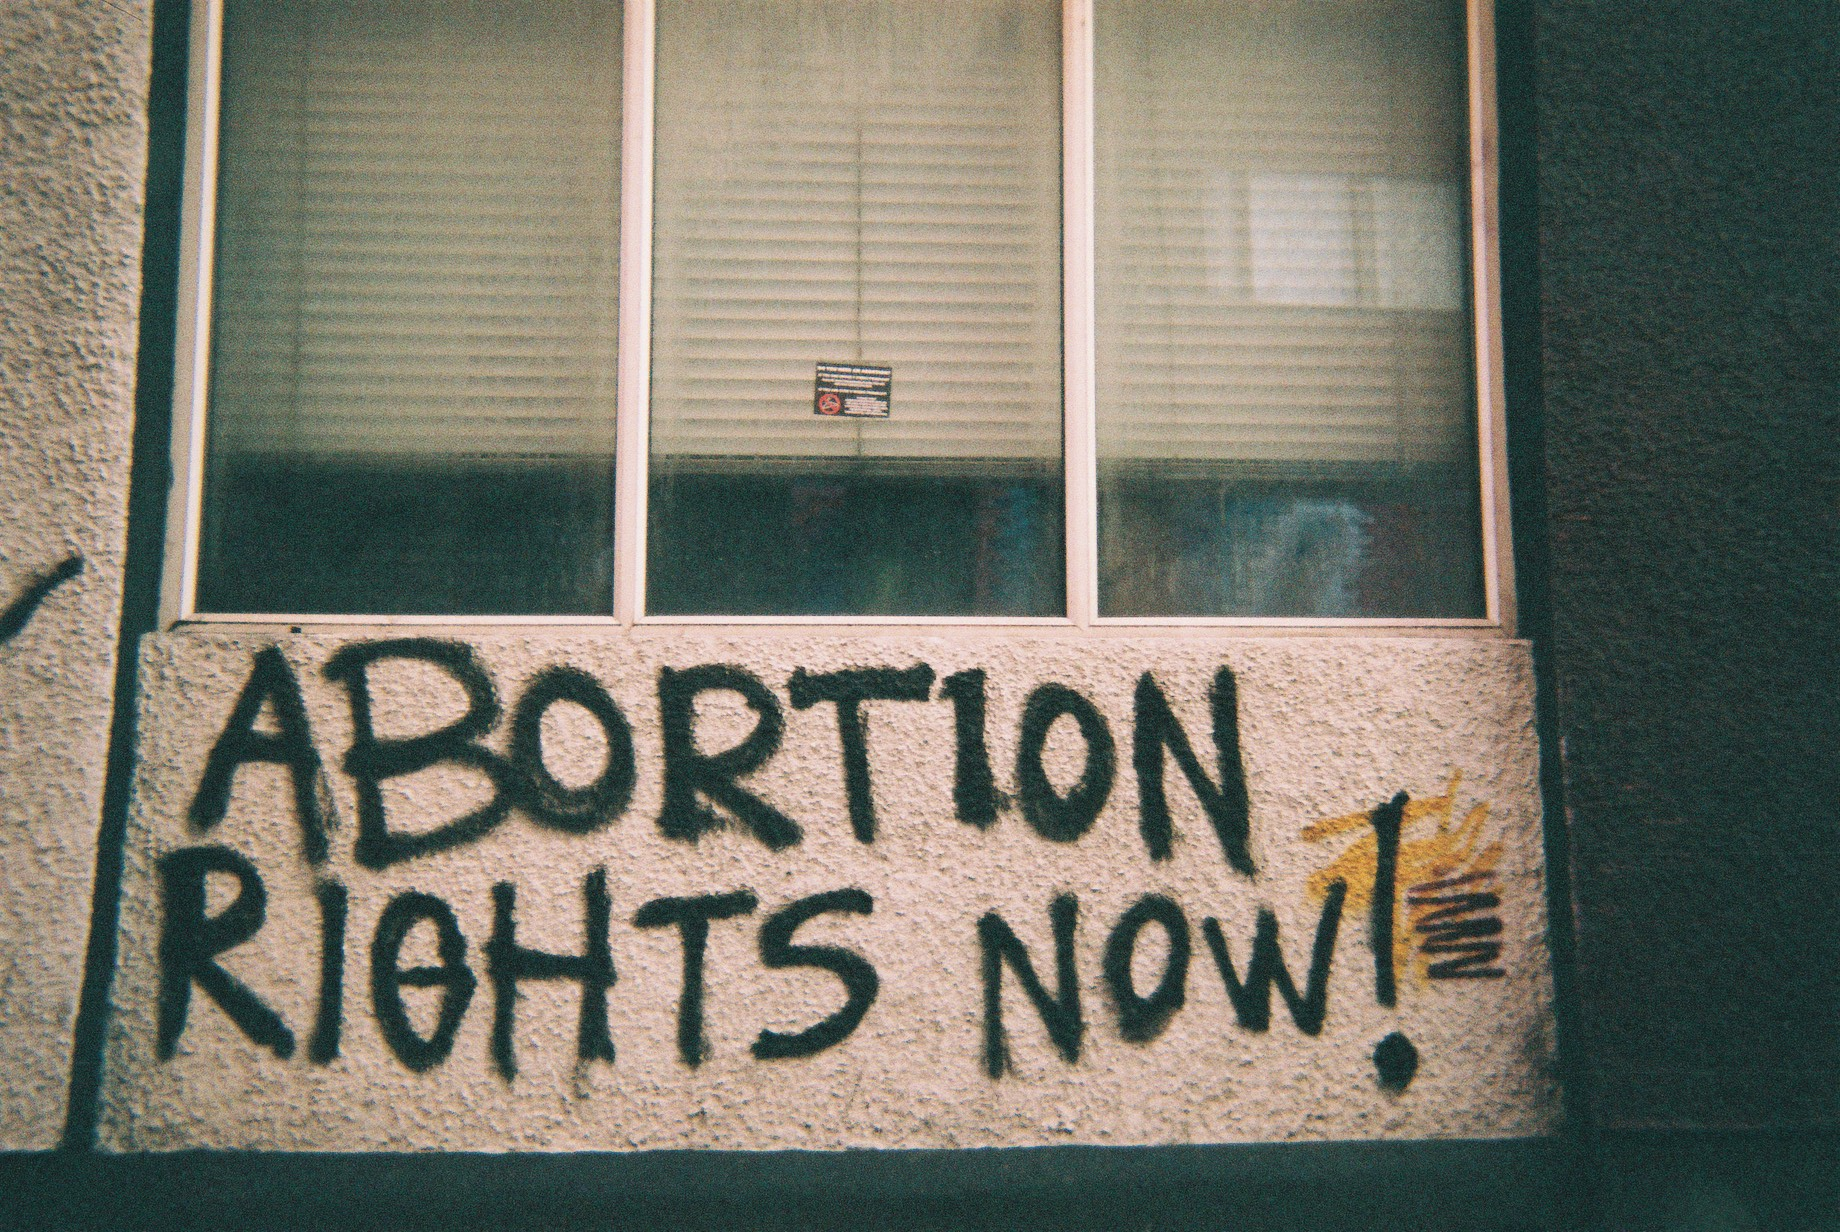 Abortion Rights Now graffiti seen in Belfast (Photo: James Cropper)